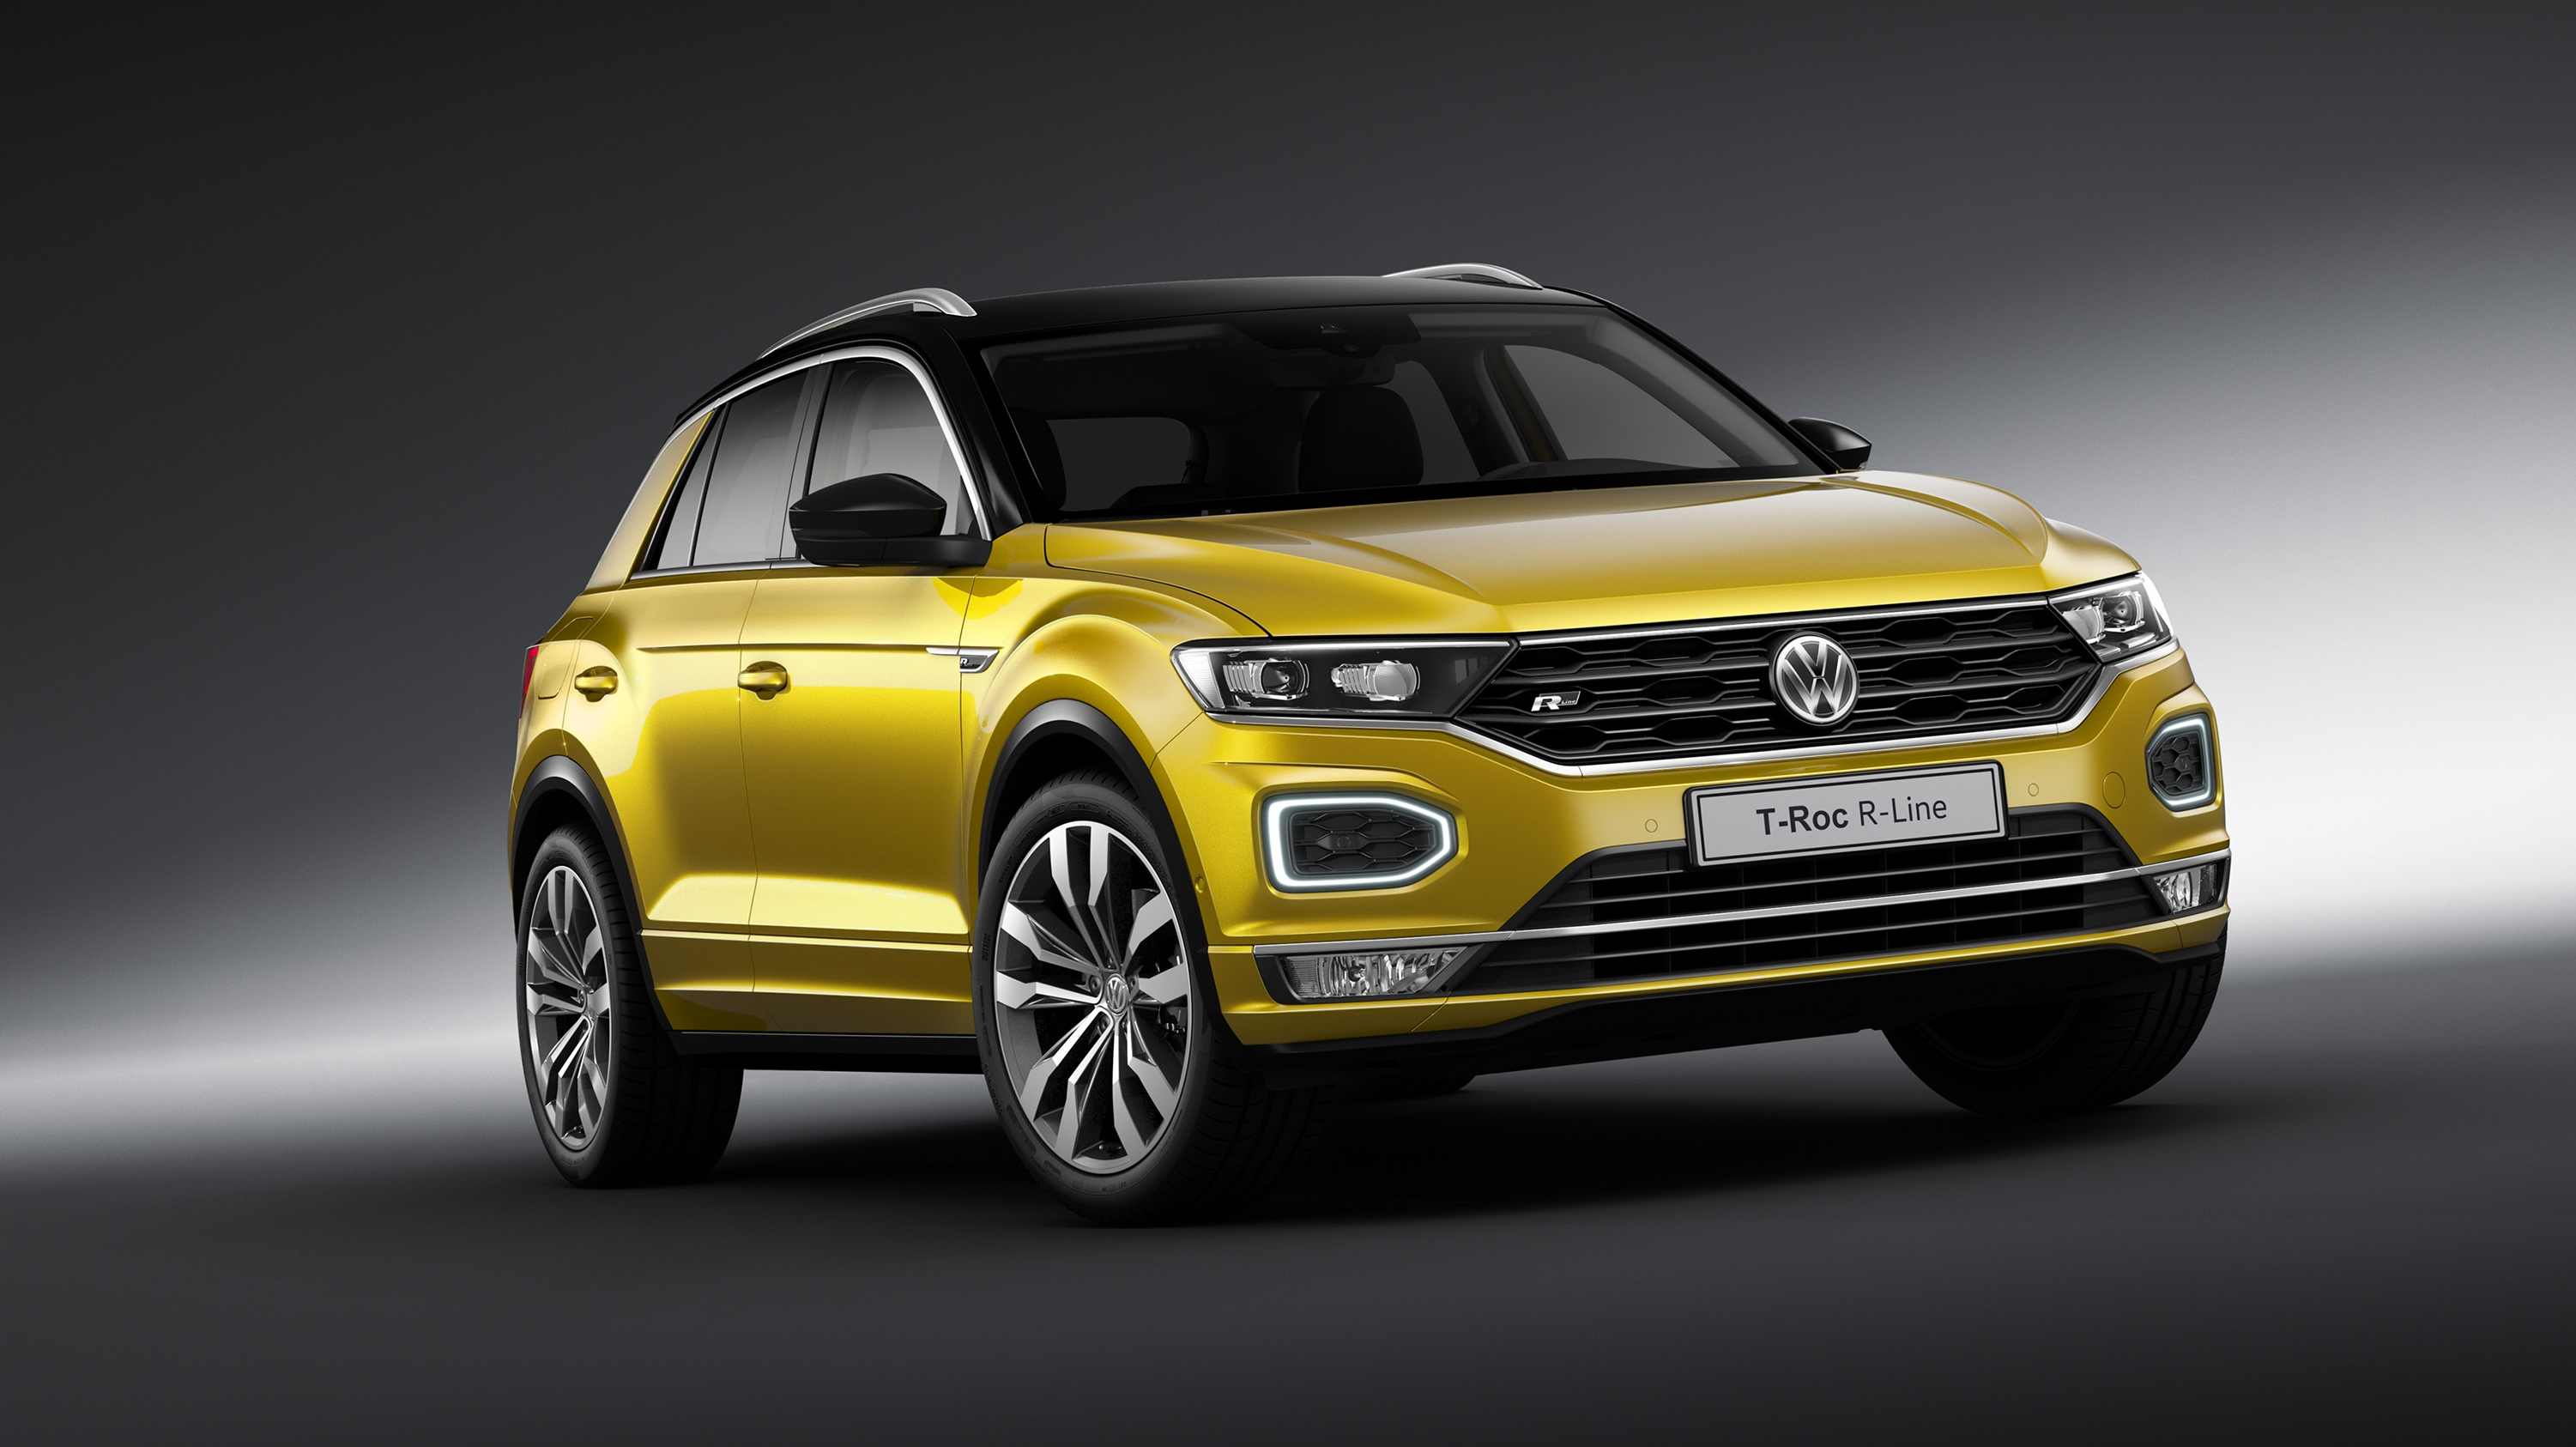 2018 volkswagen t roc r line top speed. Black Bedroom Furniture Sets. Home Design Ideas